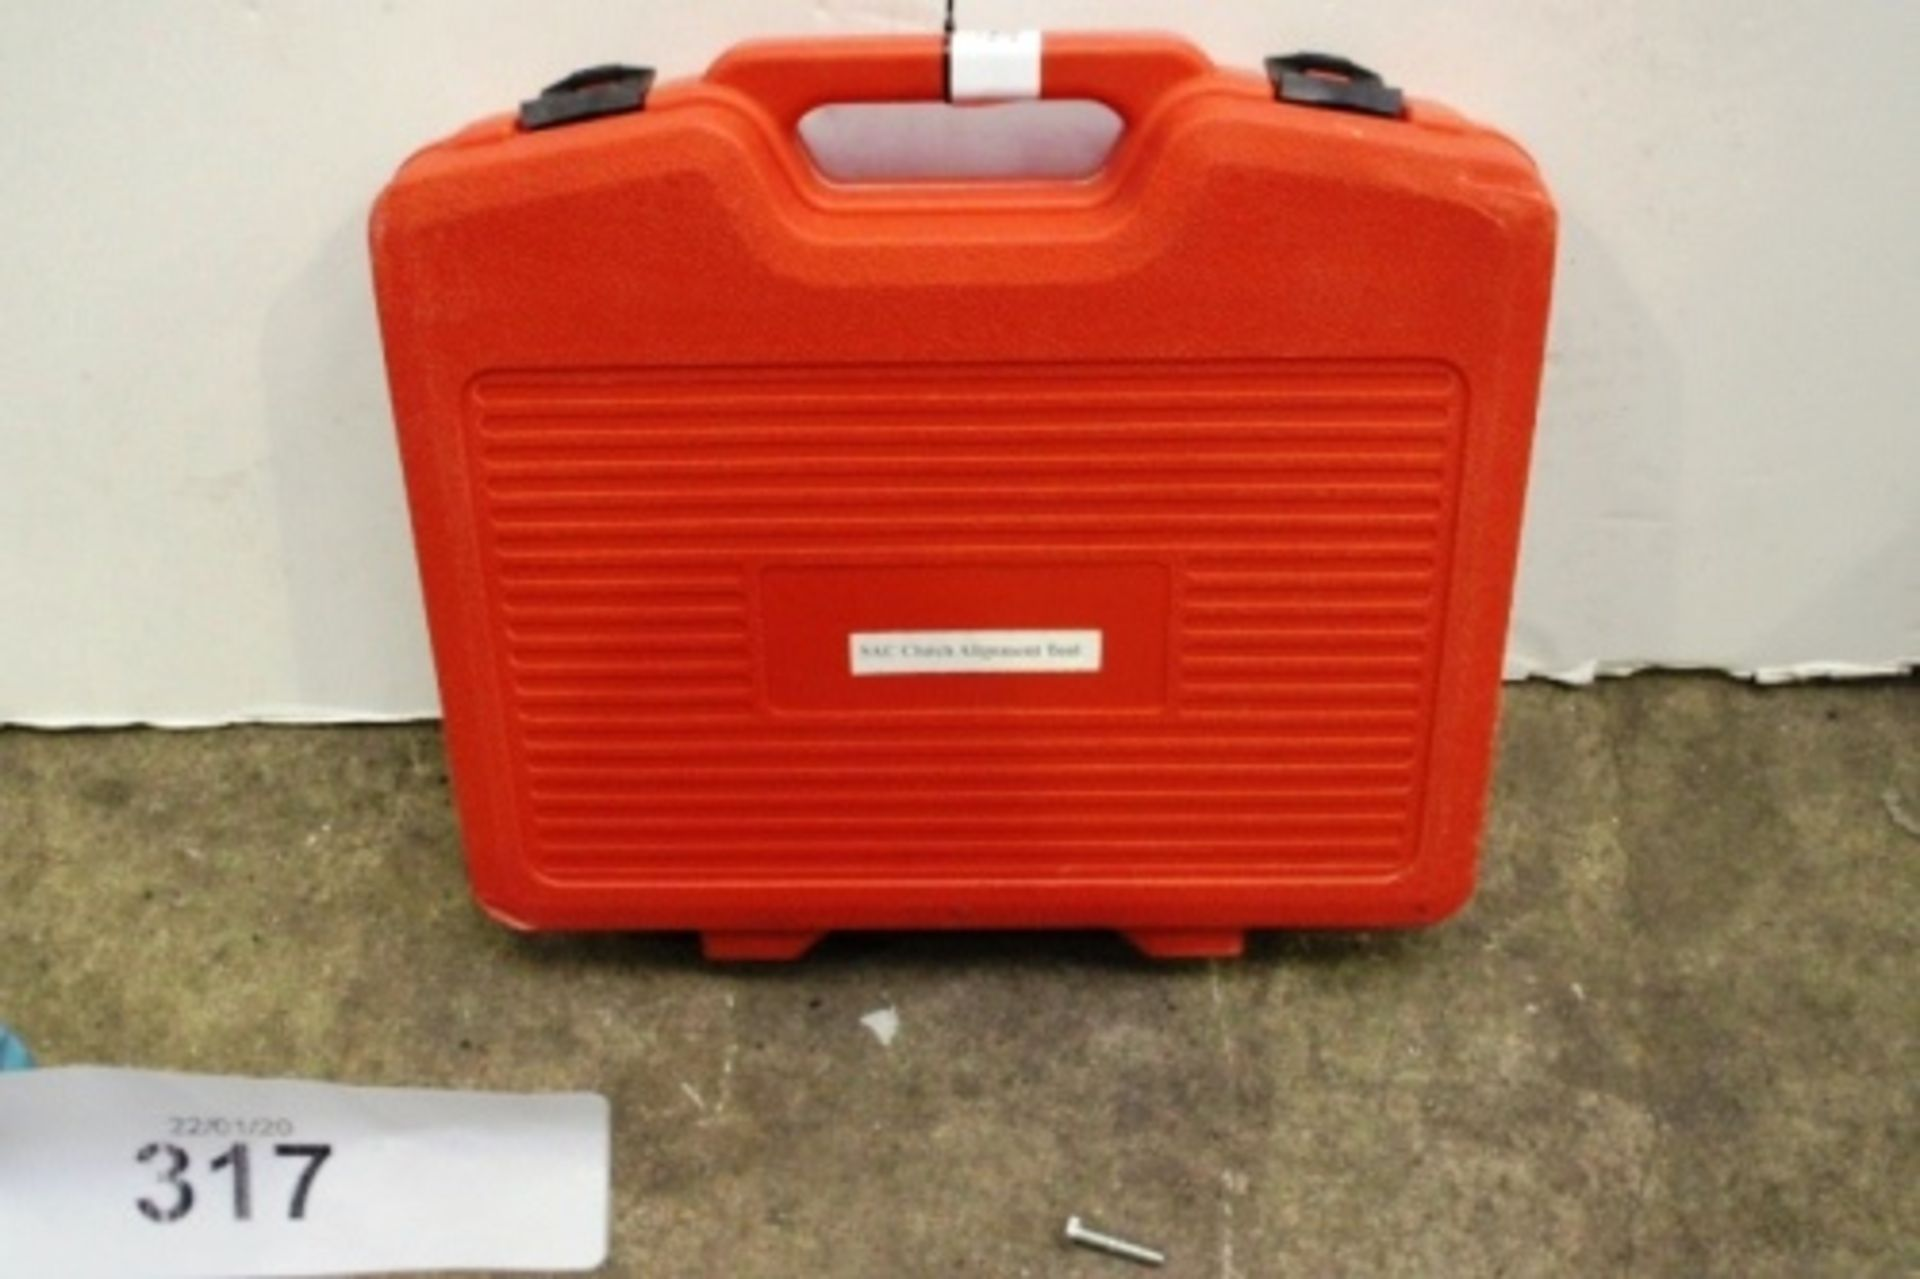 Lot 317 - 1 x SAC clutch alignment tool in red carry case - Sealed new in box (GS7end)